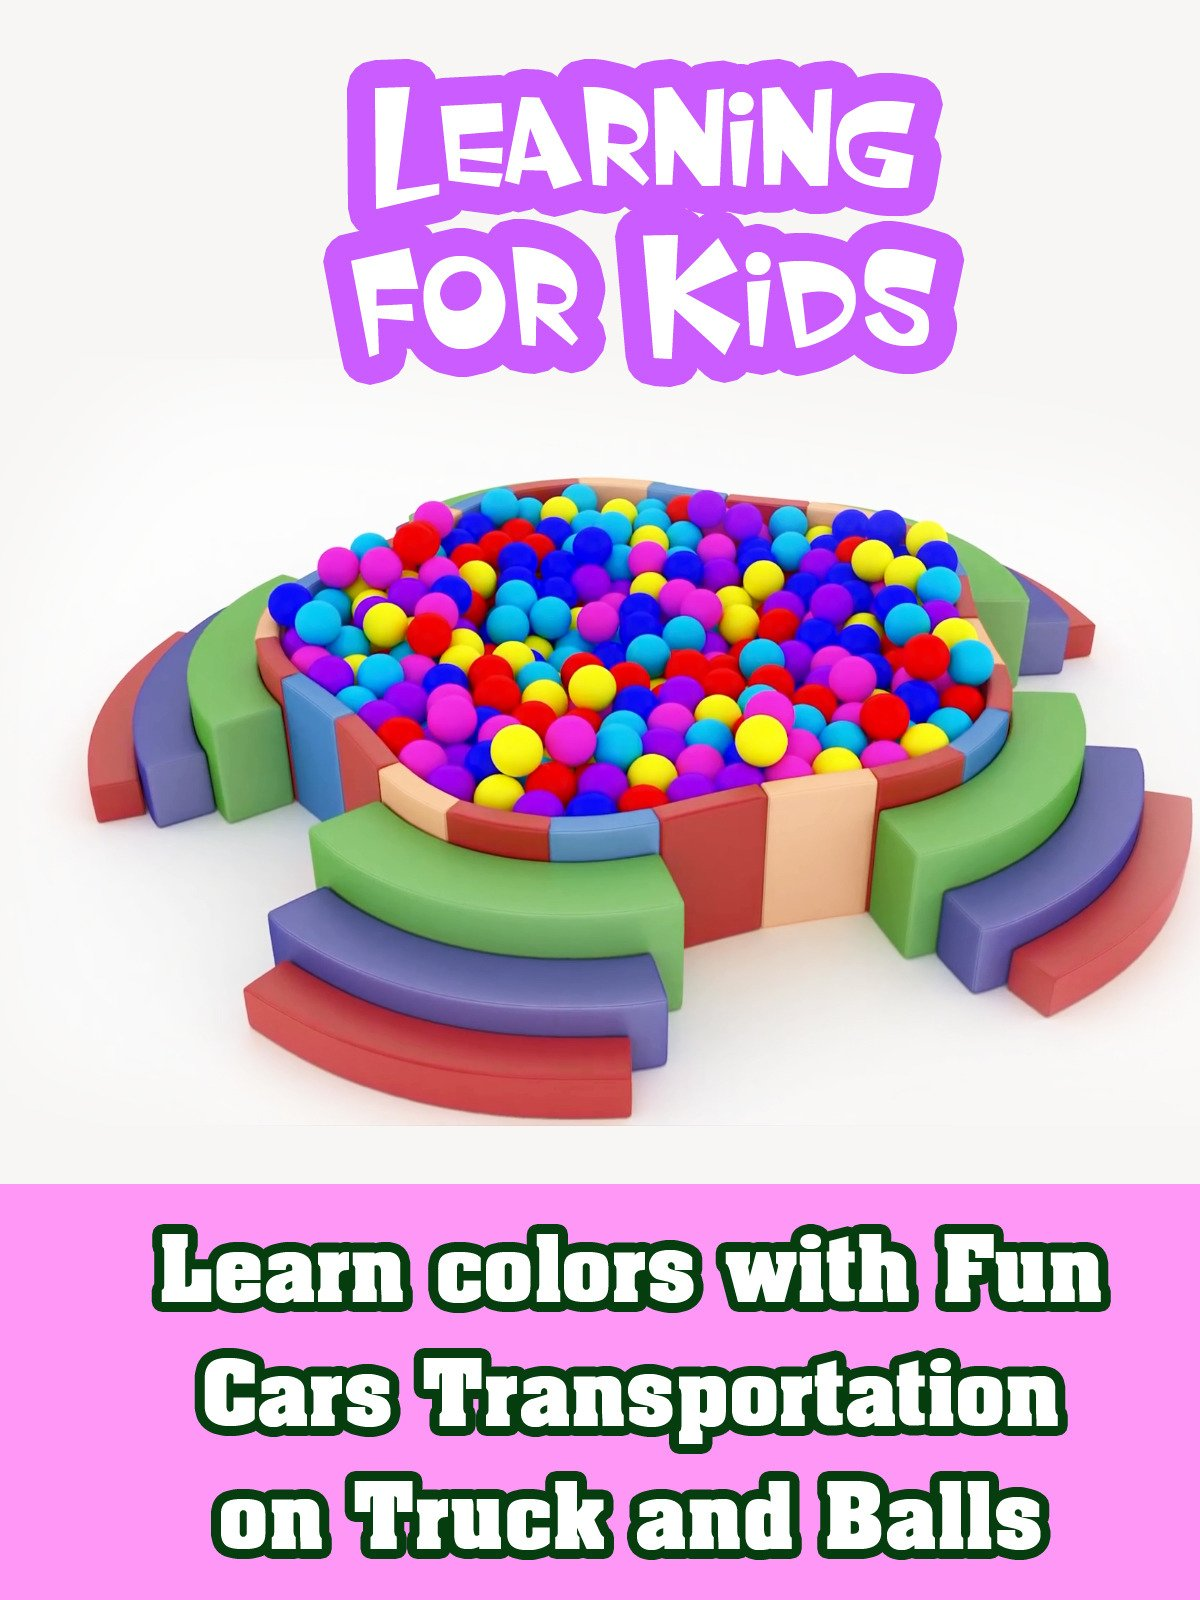 Learn colors with Fun Cars Transportation on Truck and Balls